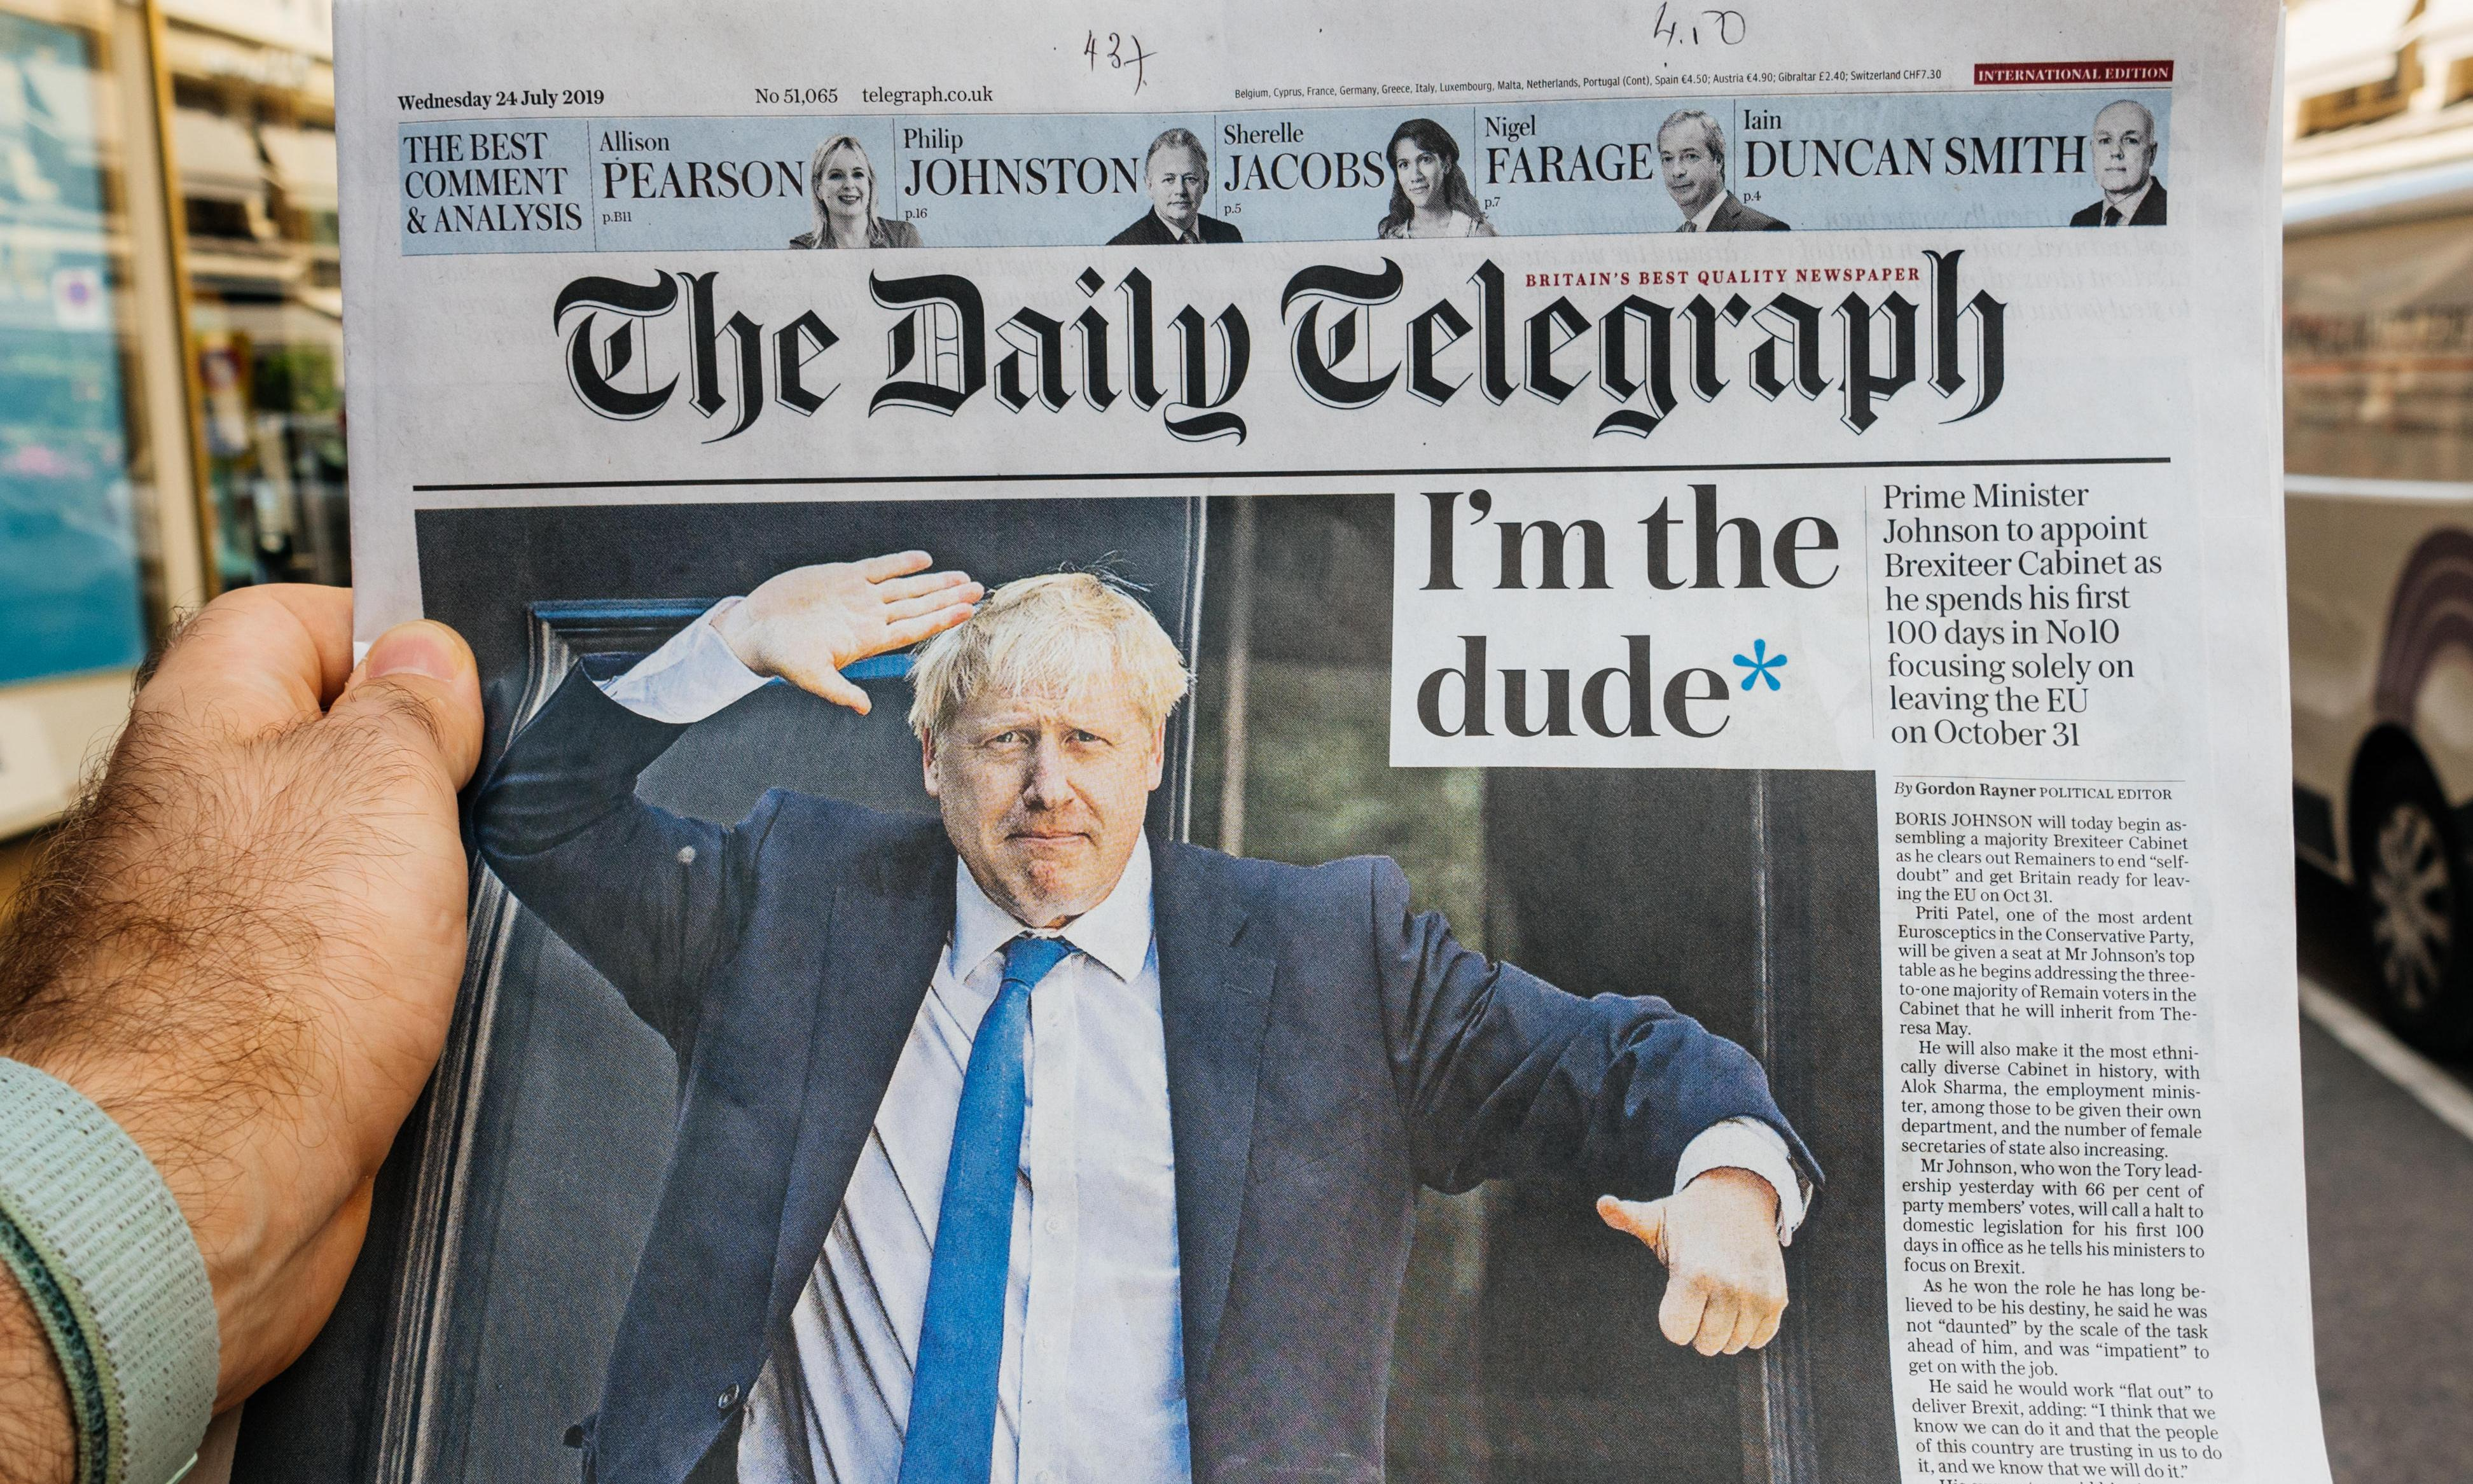 Like the Tories, the Telegraph has turned radical